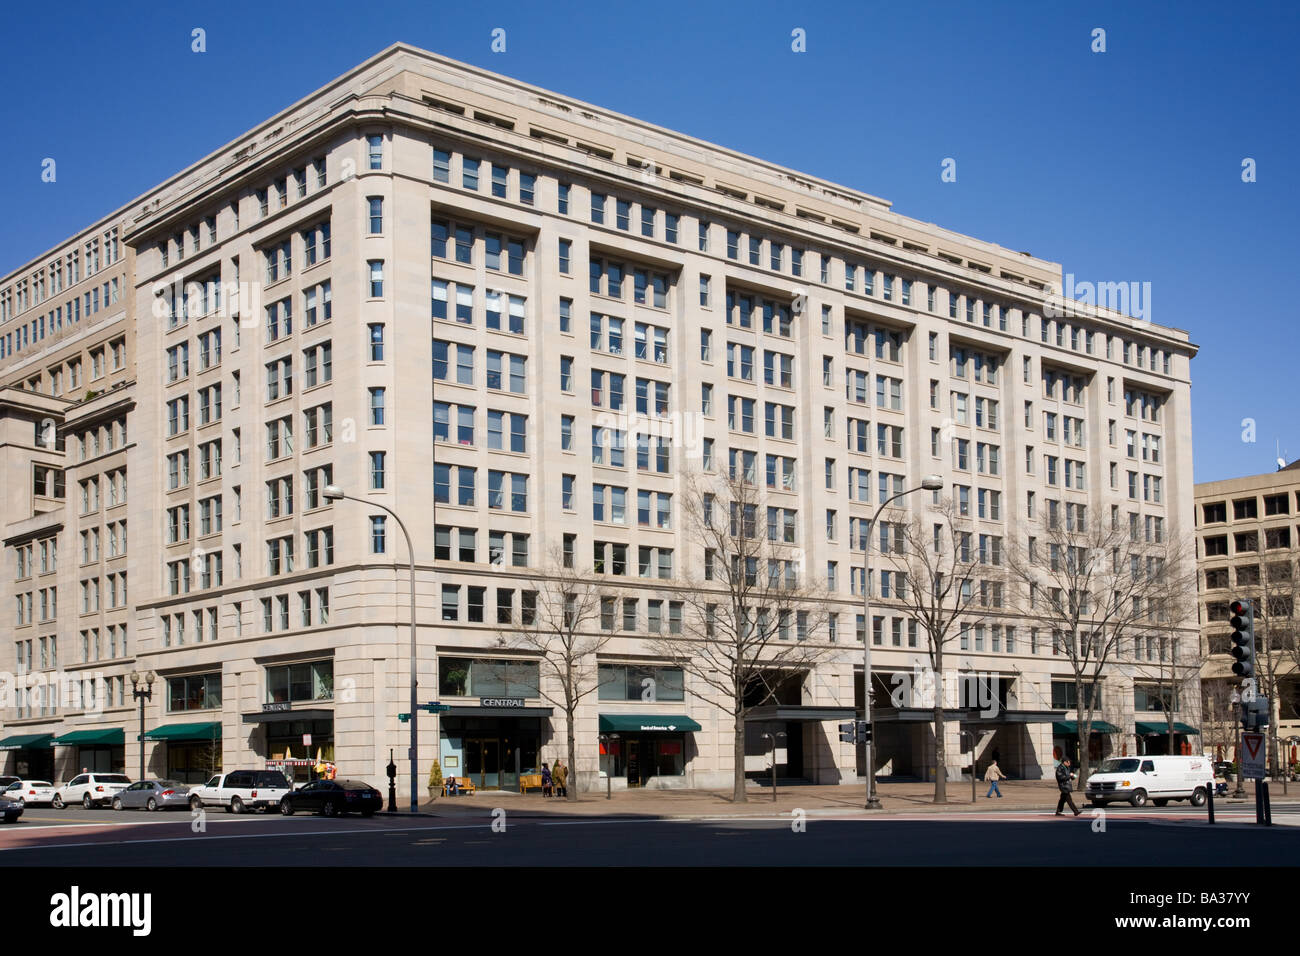 The Carlyle Group has its world headquarters in this ...